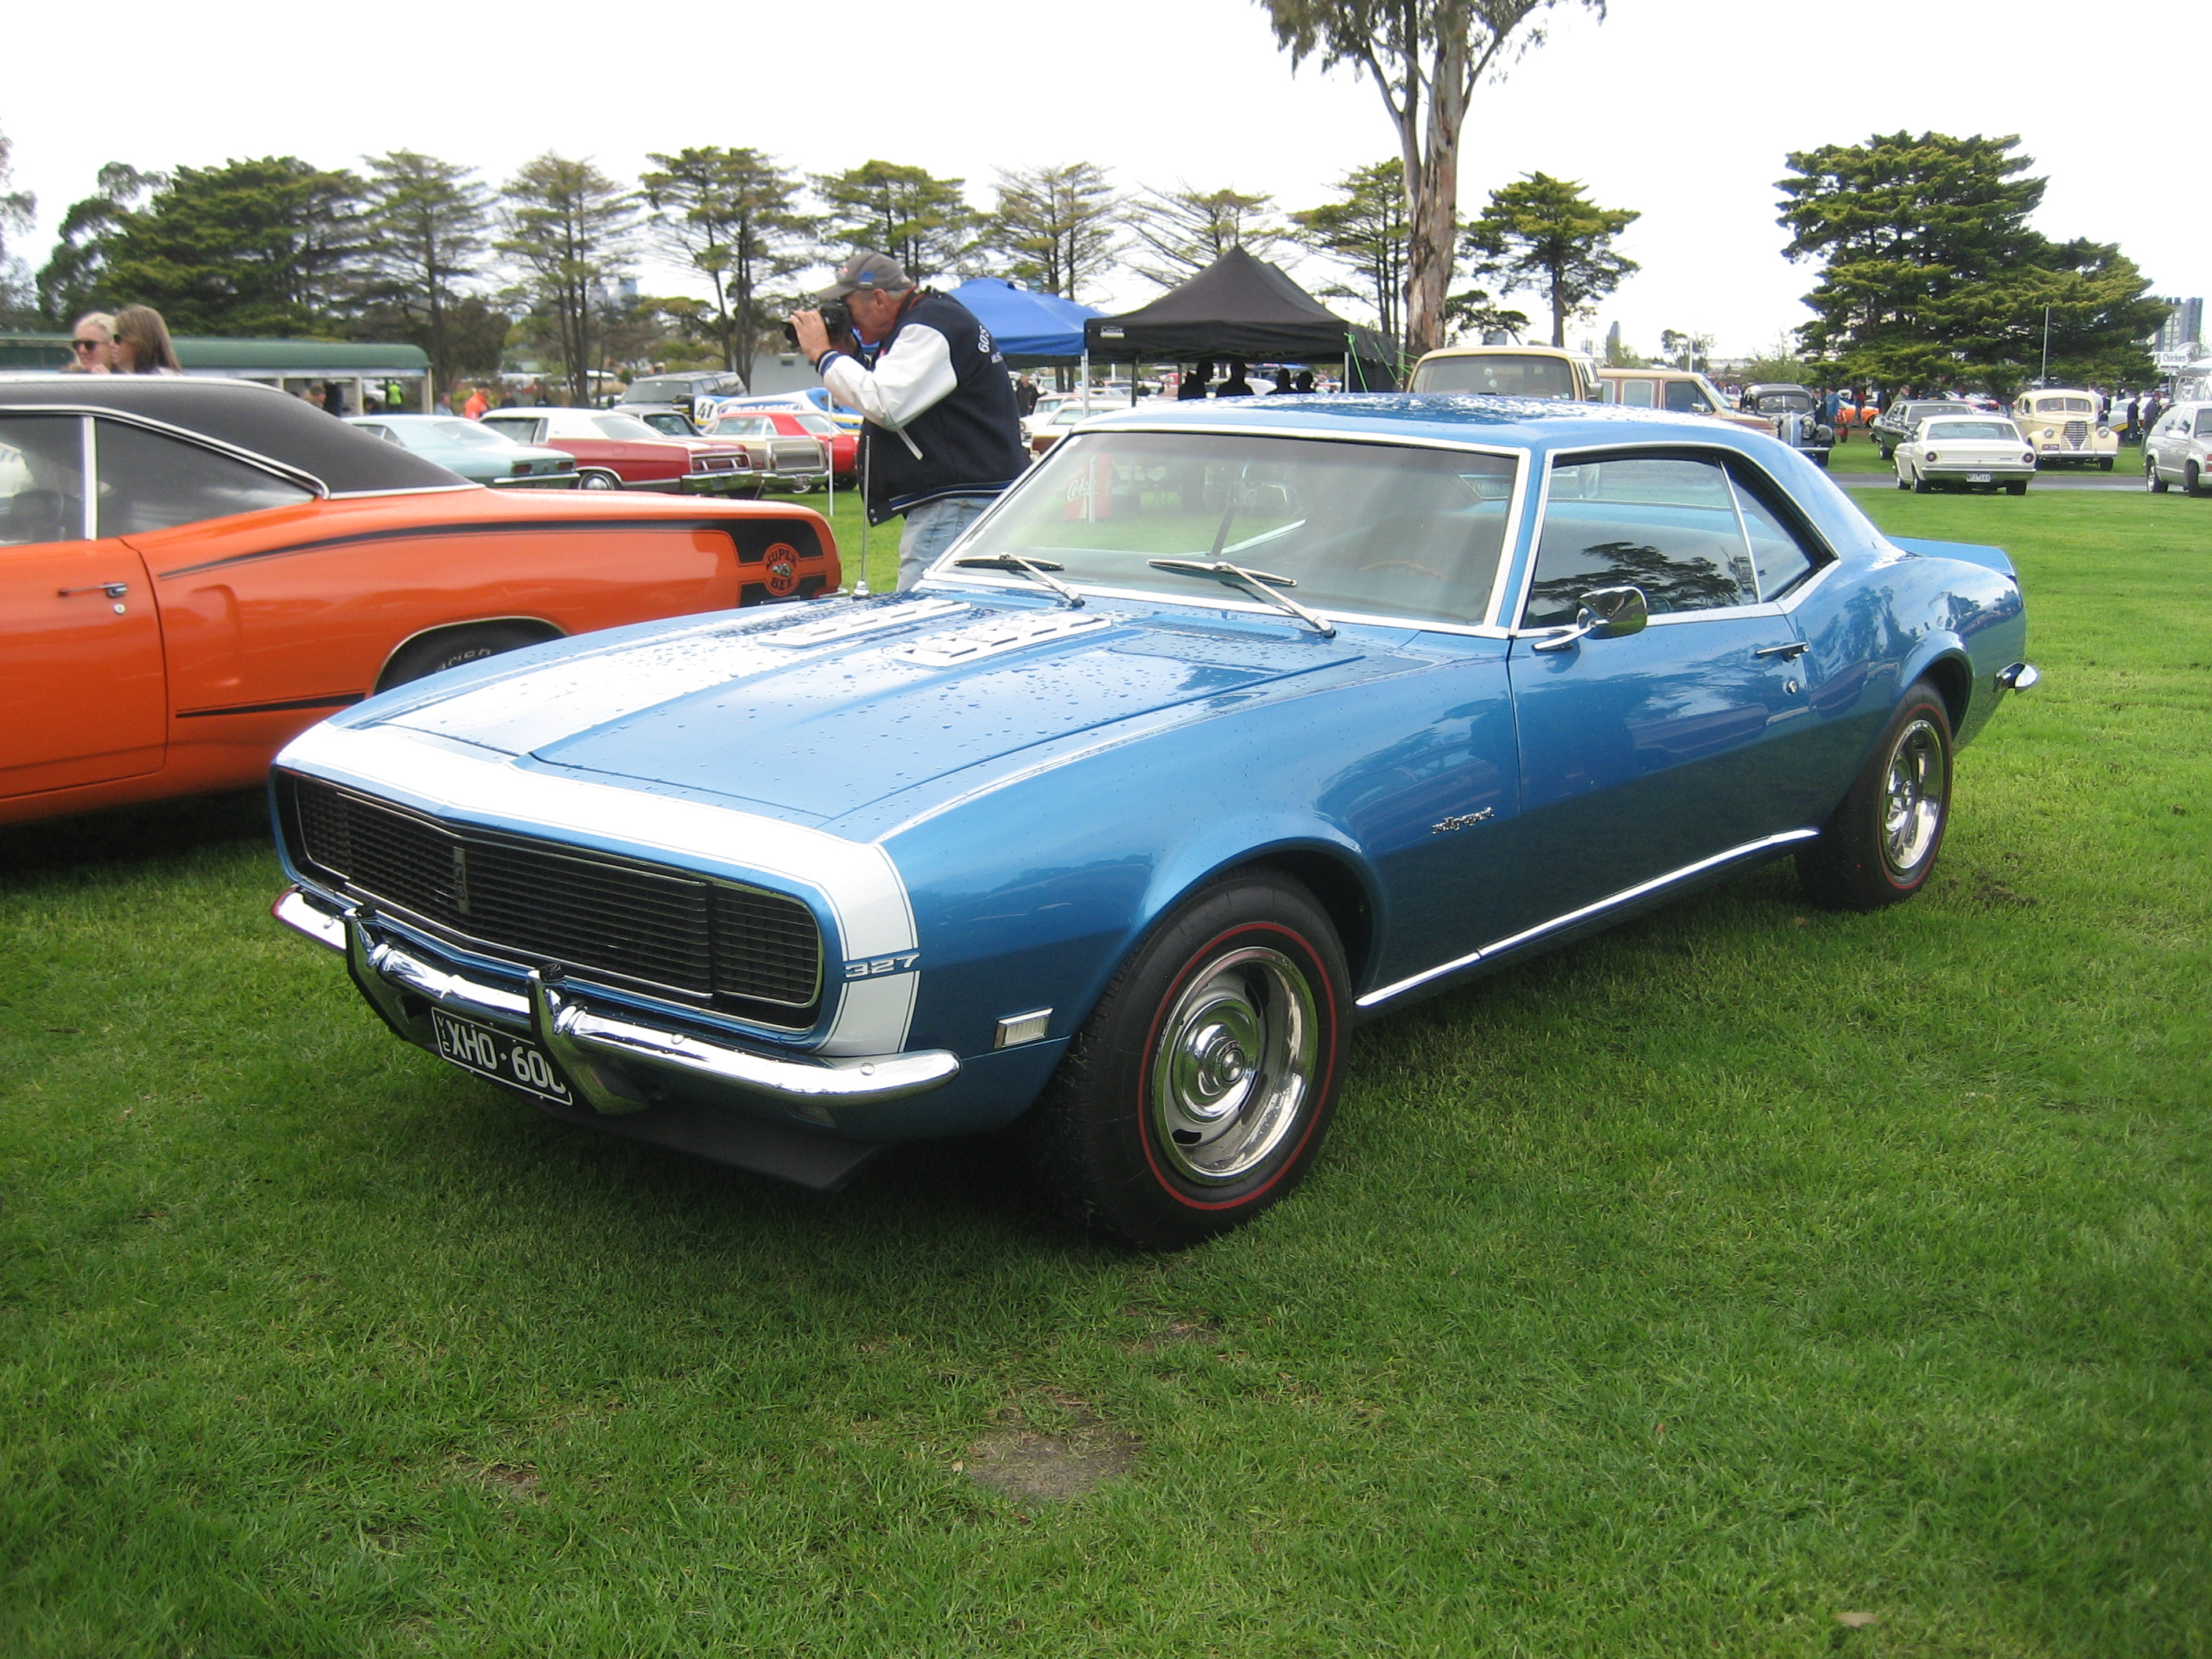 1965 Buick Riviera C 620 additionally Skoda Kodiaq Review Pictures Specs Price as well 2017 Toyota Sequoia Bigger For The Same Price together with 34 Dodge Brothers Sedan as well Chrysler Thunderbolt. on hidden headlights